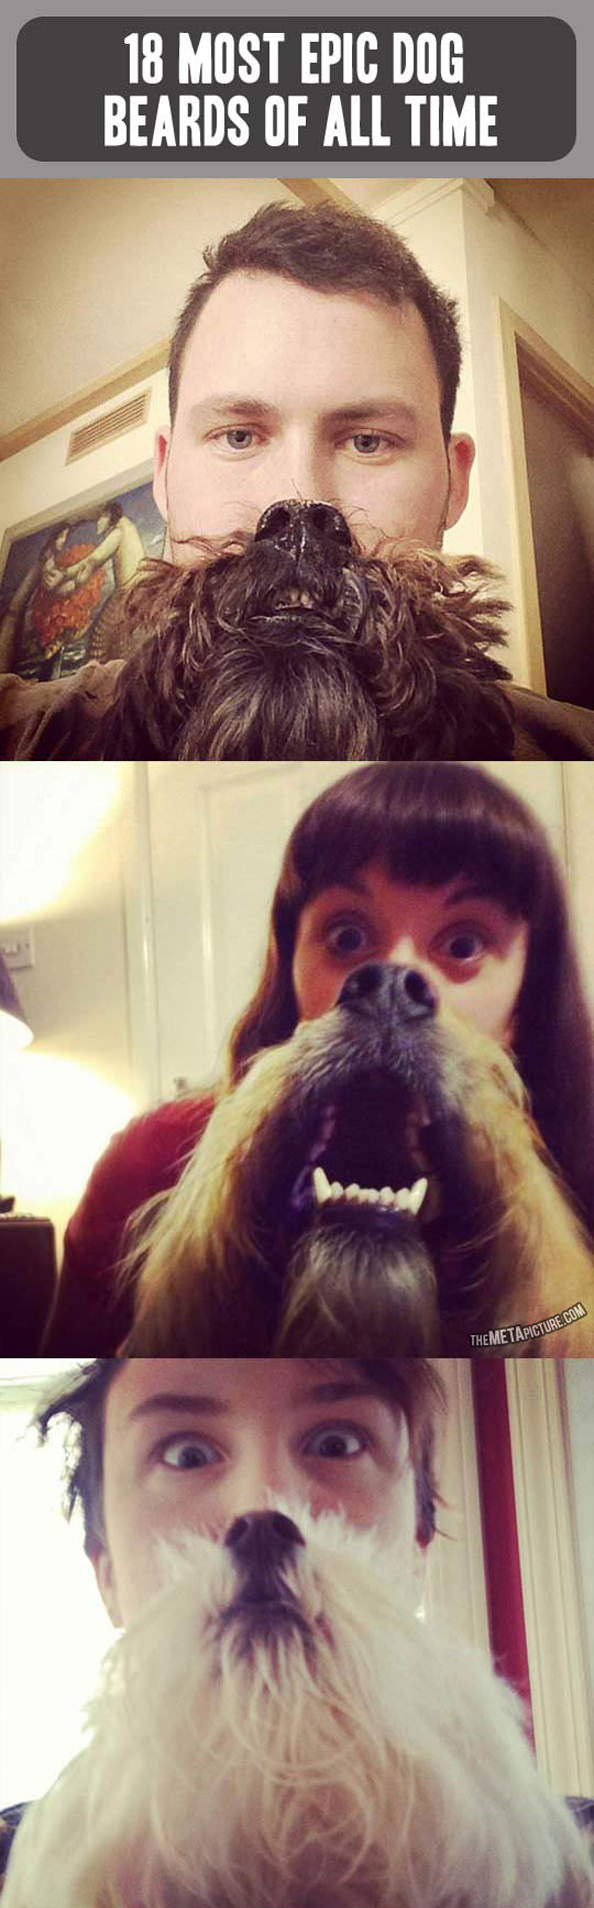 dogbeards_mini